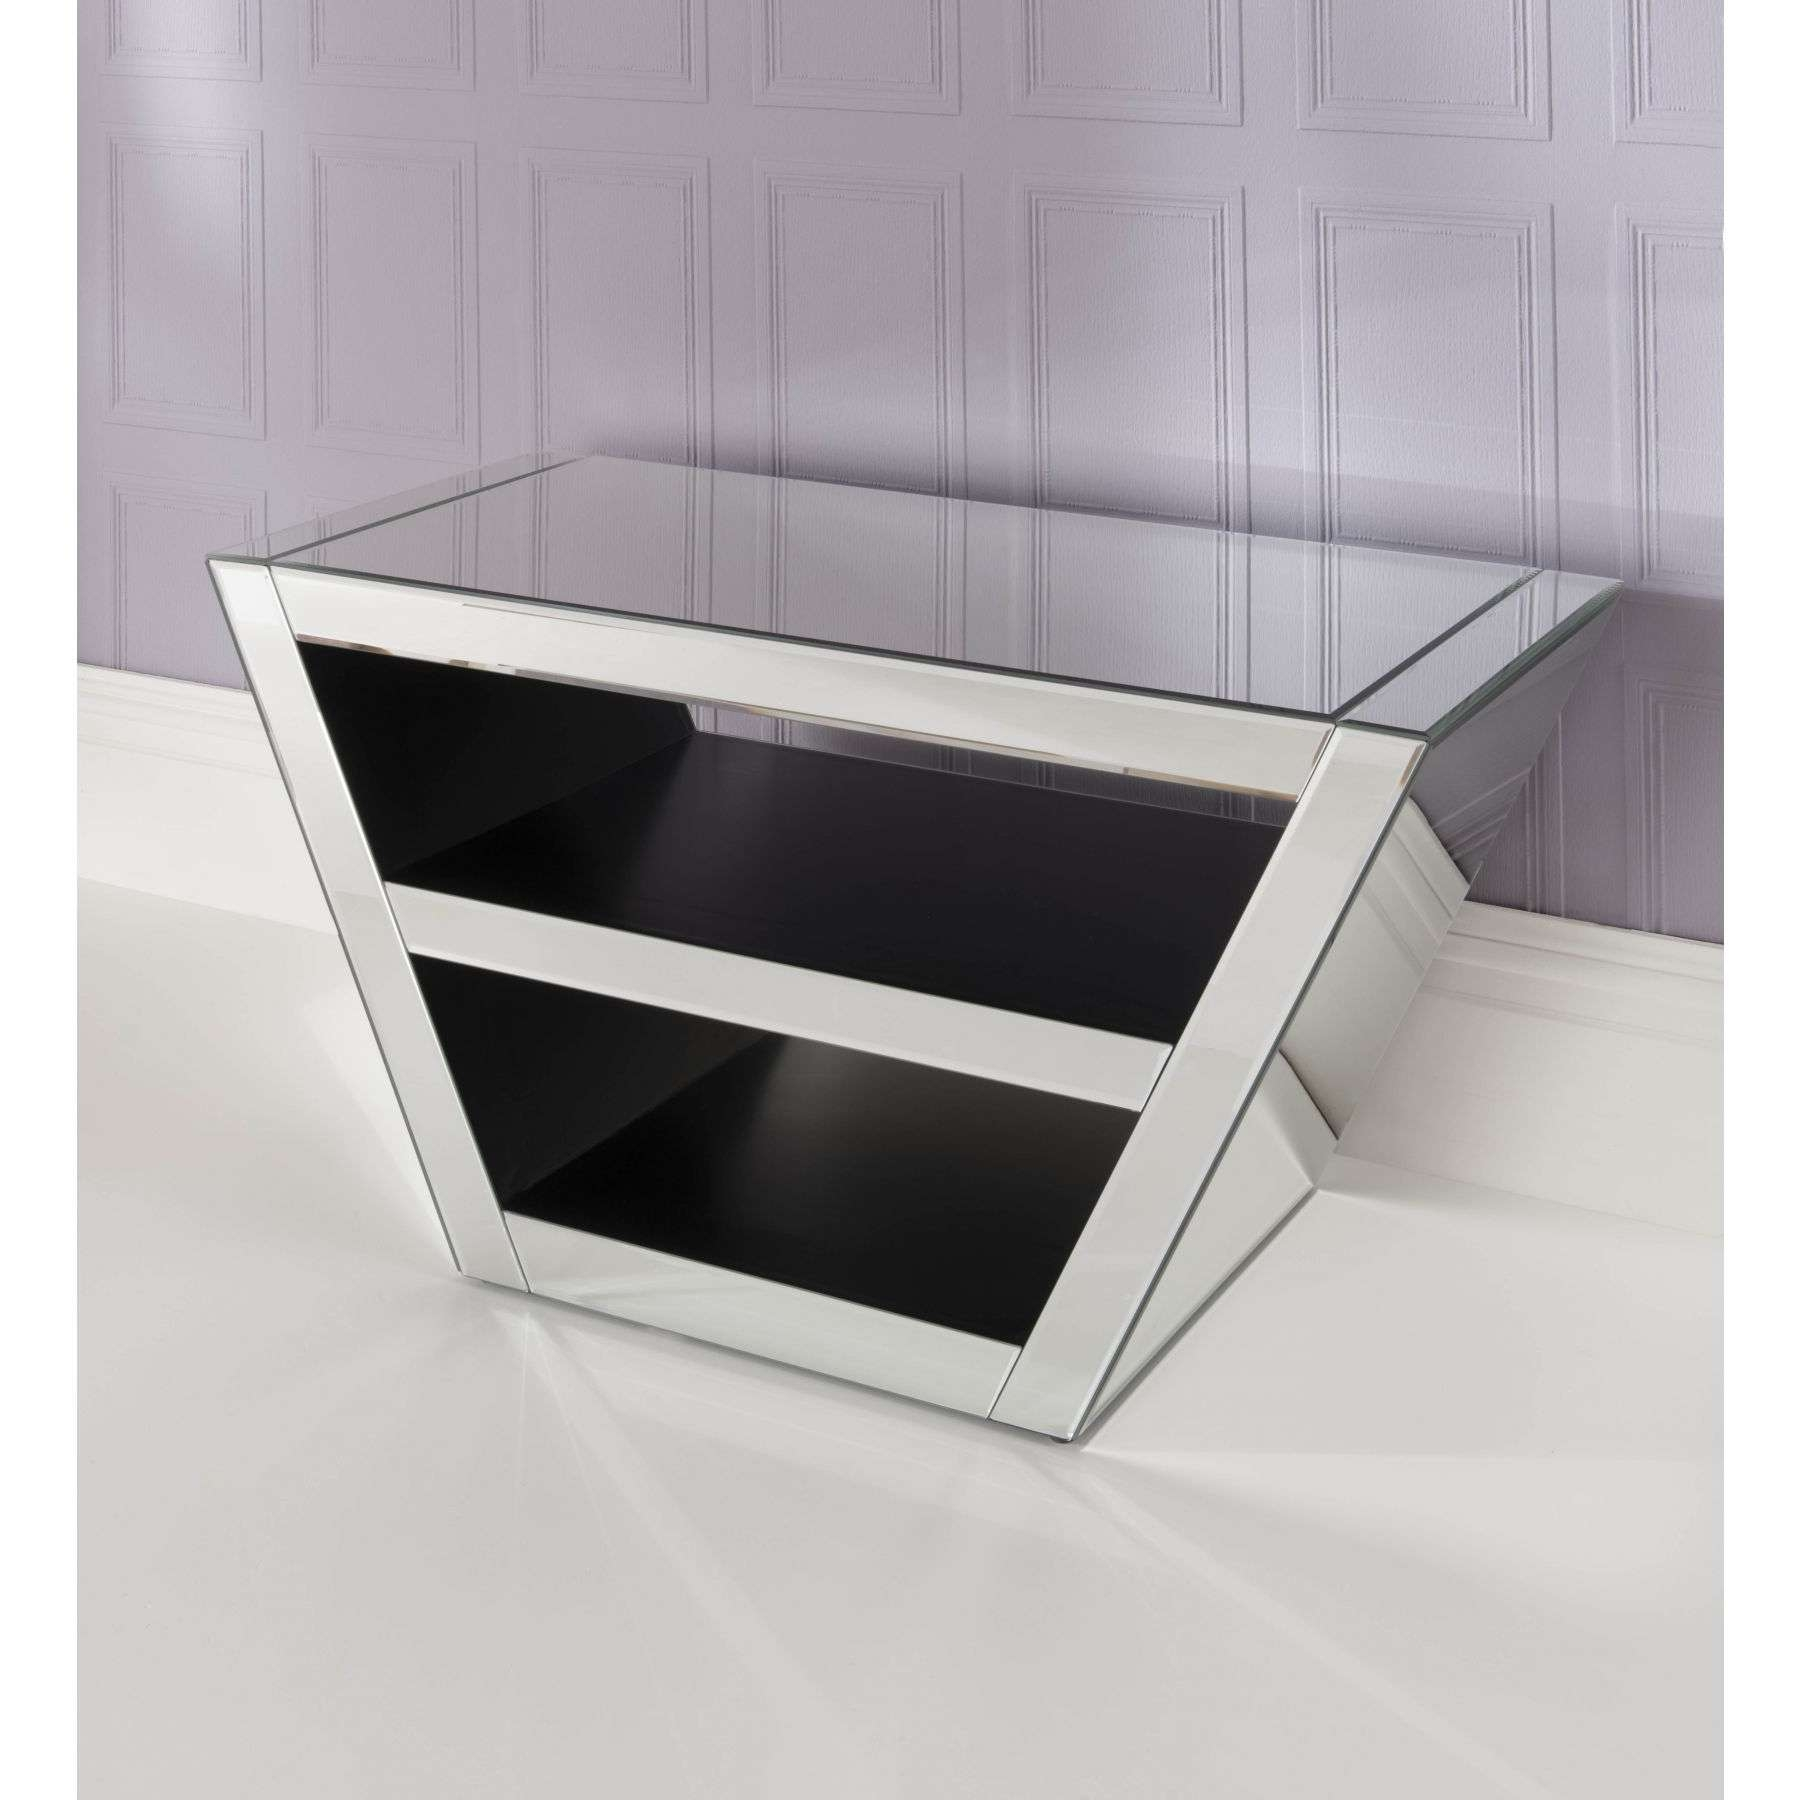 Mirrored Tv Cabinet | Venetian Glass Tv Stand | Homesdirect365 Pertaining To Mirrored Tv Cabinets Furniture (View 3 of 20)